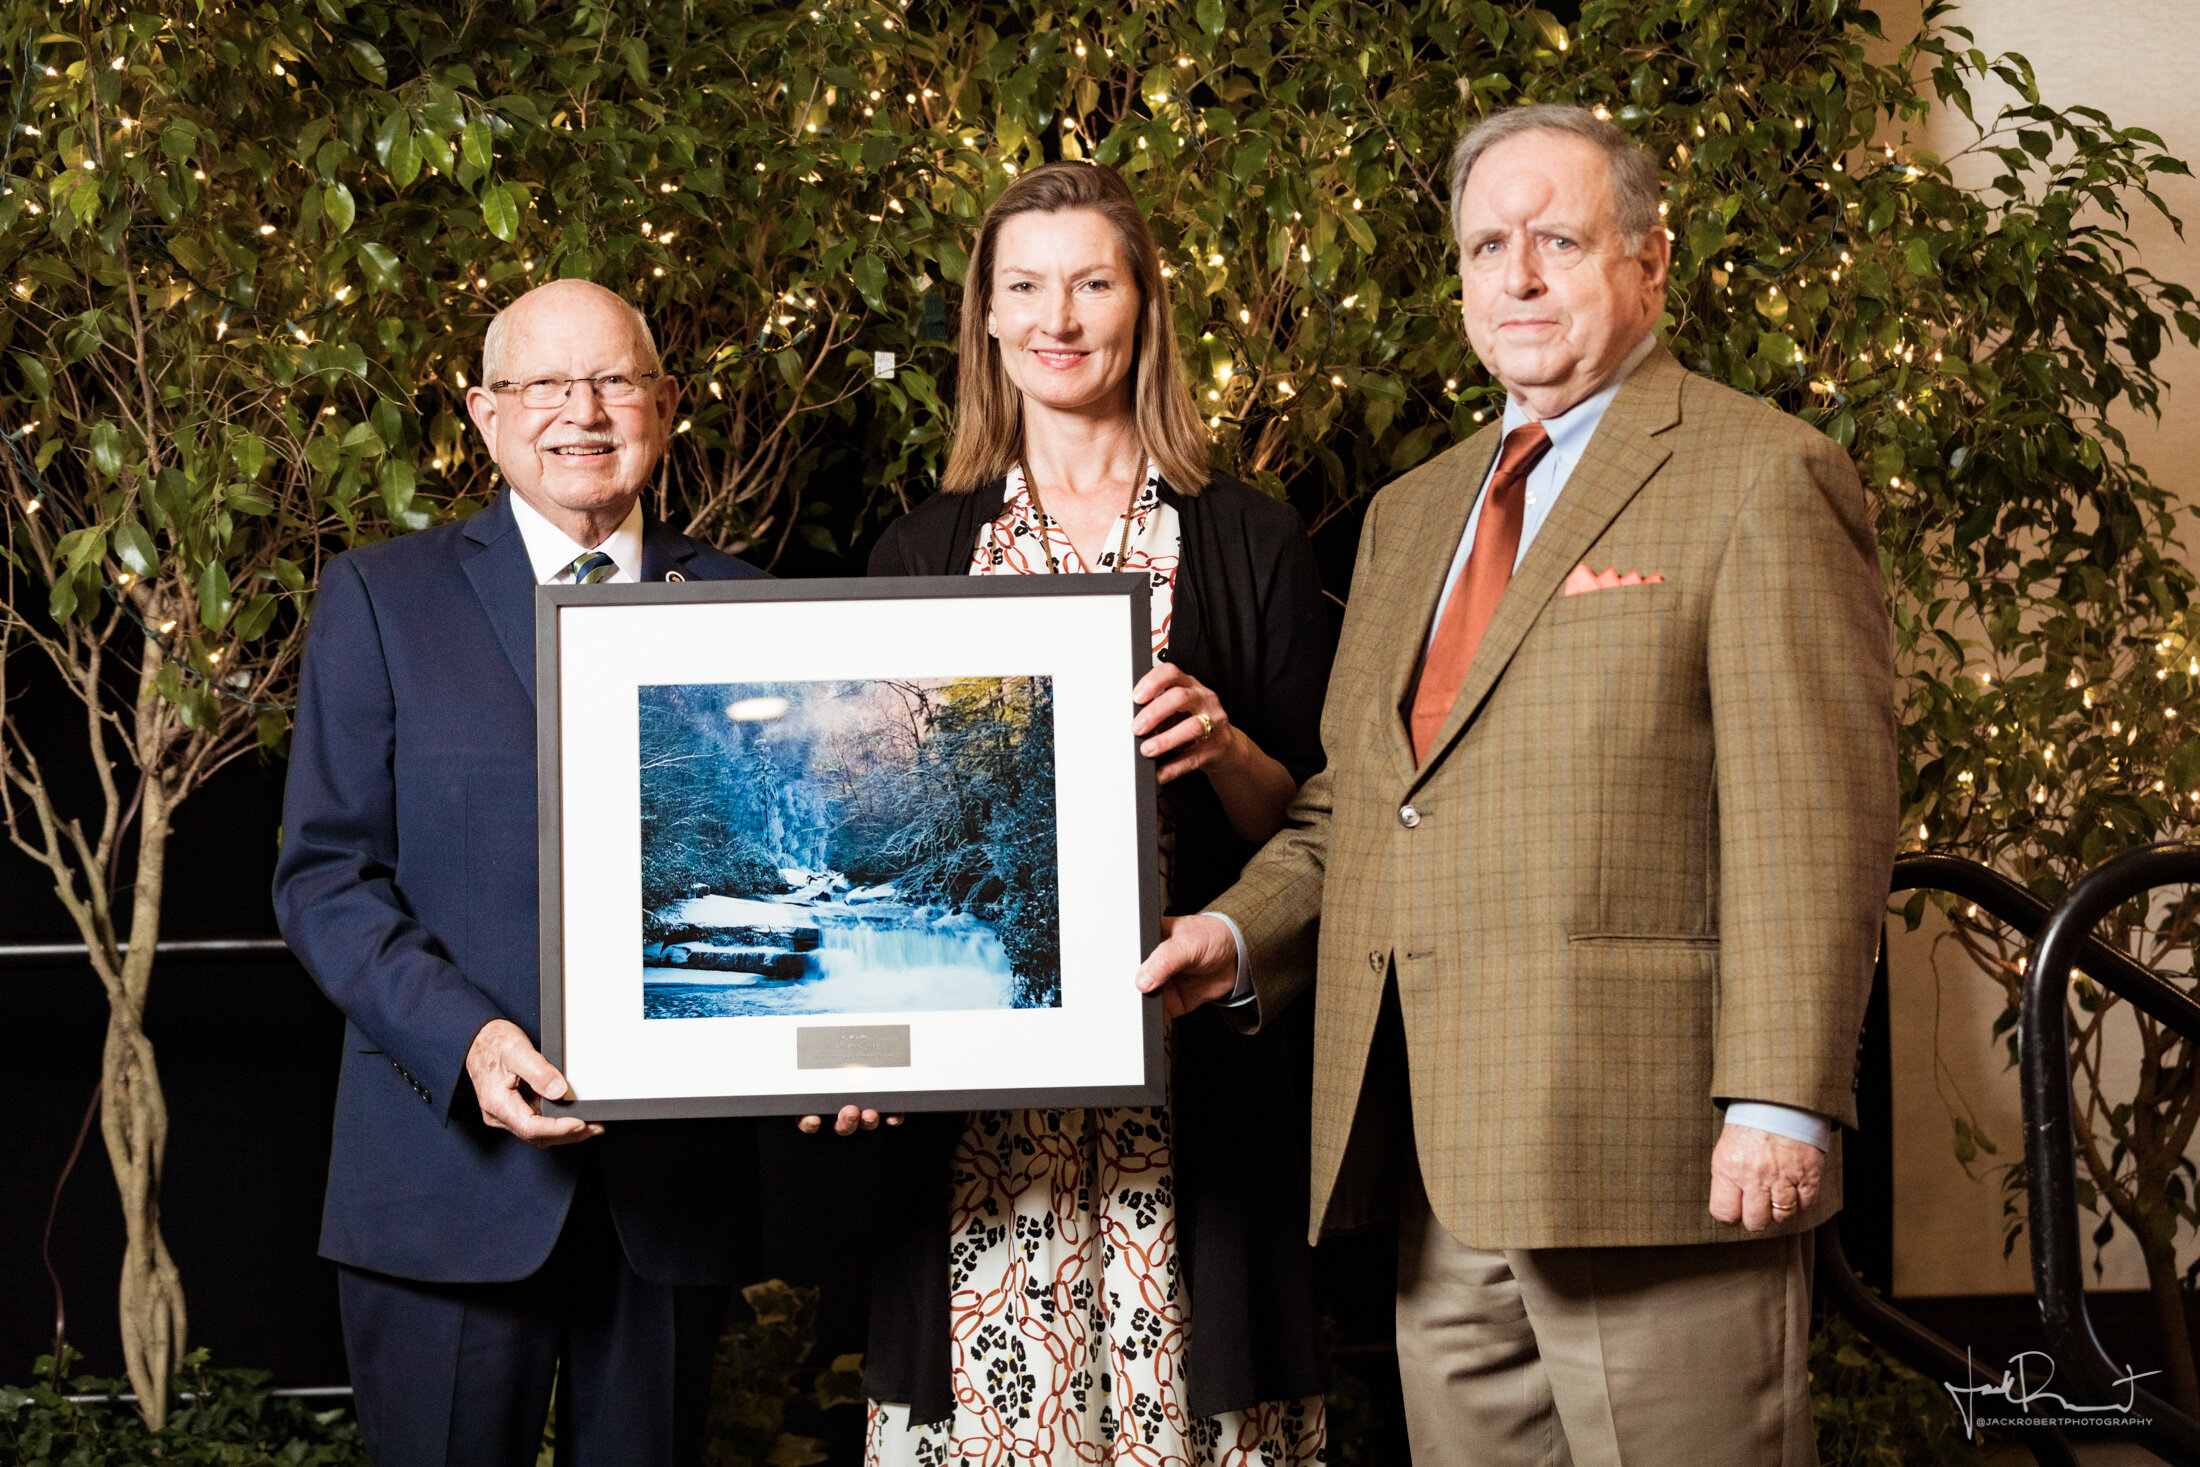 Representative Bill Sandifer, Andrea Cooper, E. ERWIN MADDREY II  Event Photography - Upstate Forever - Forever Green Luncheon - Embassy Suites, Greenville, South Carolina - Jack Robert Photography